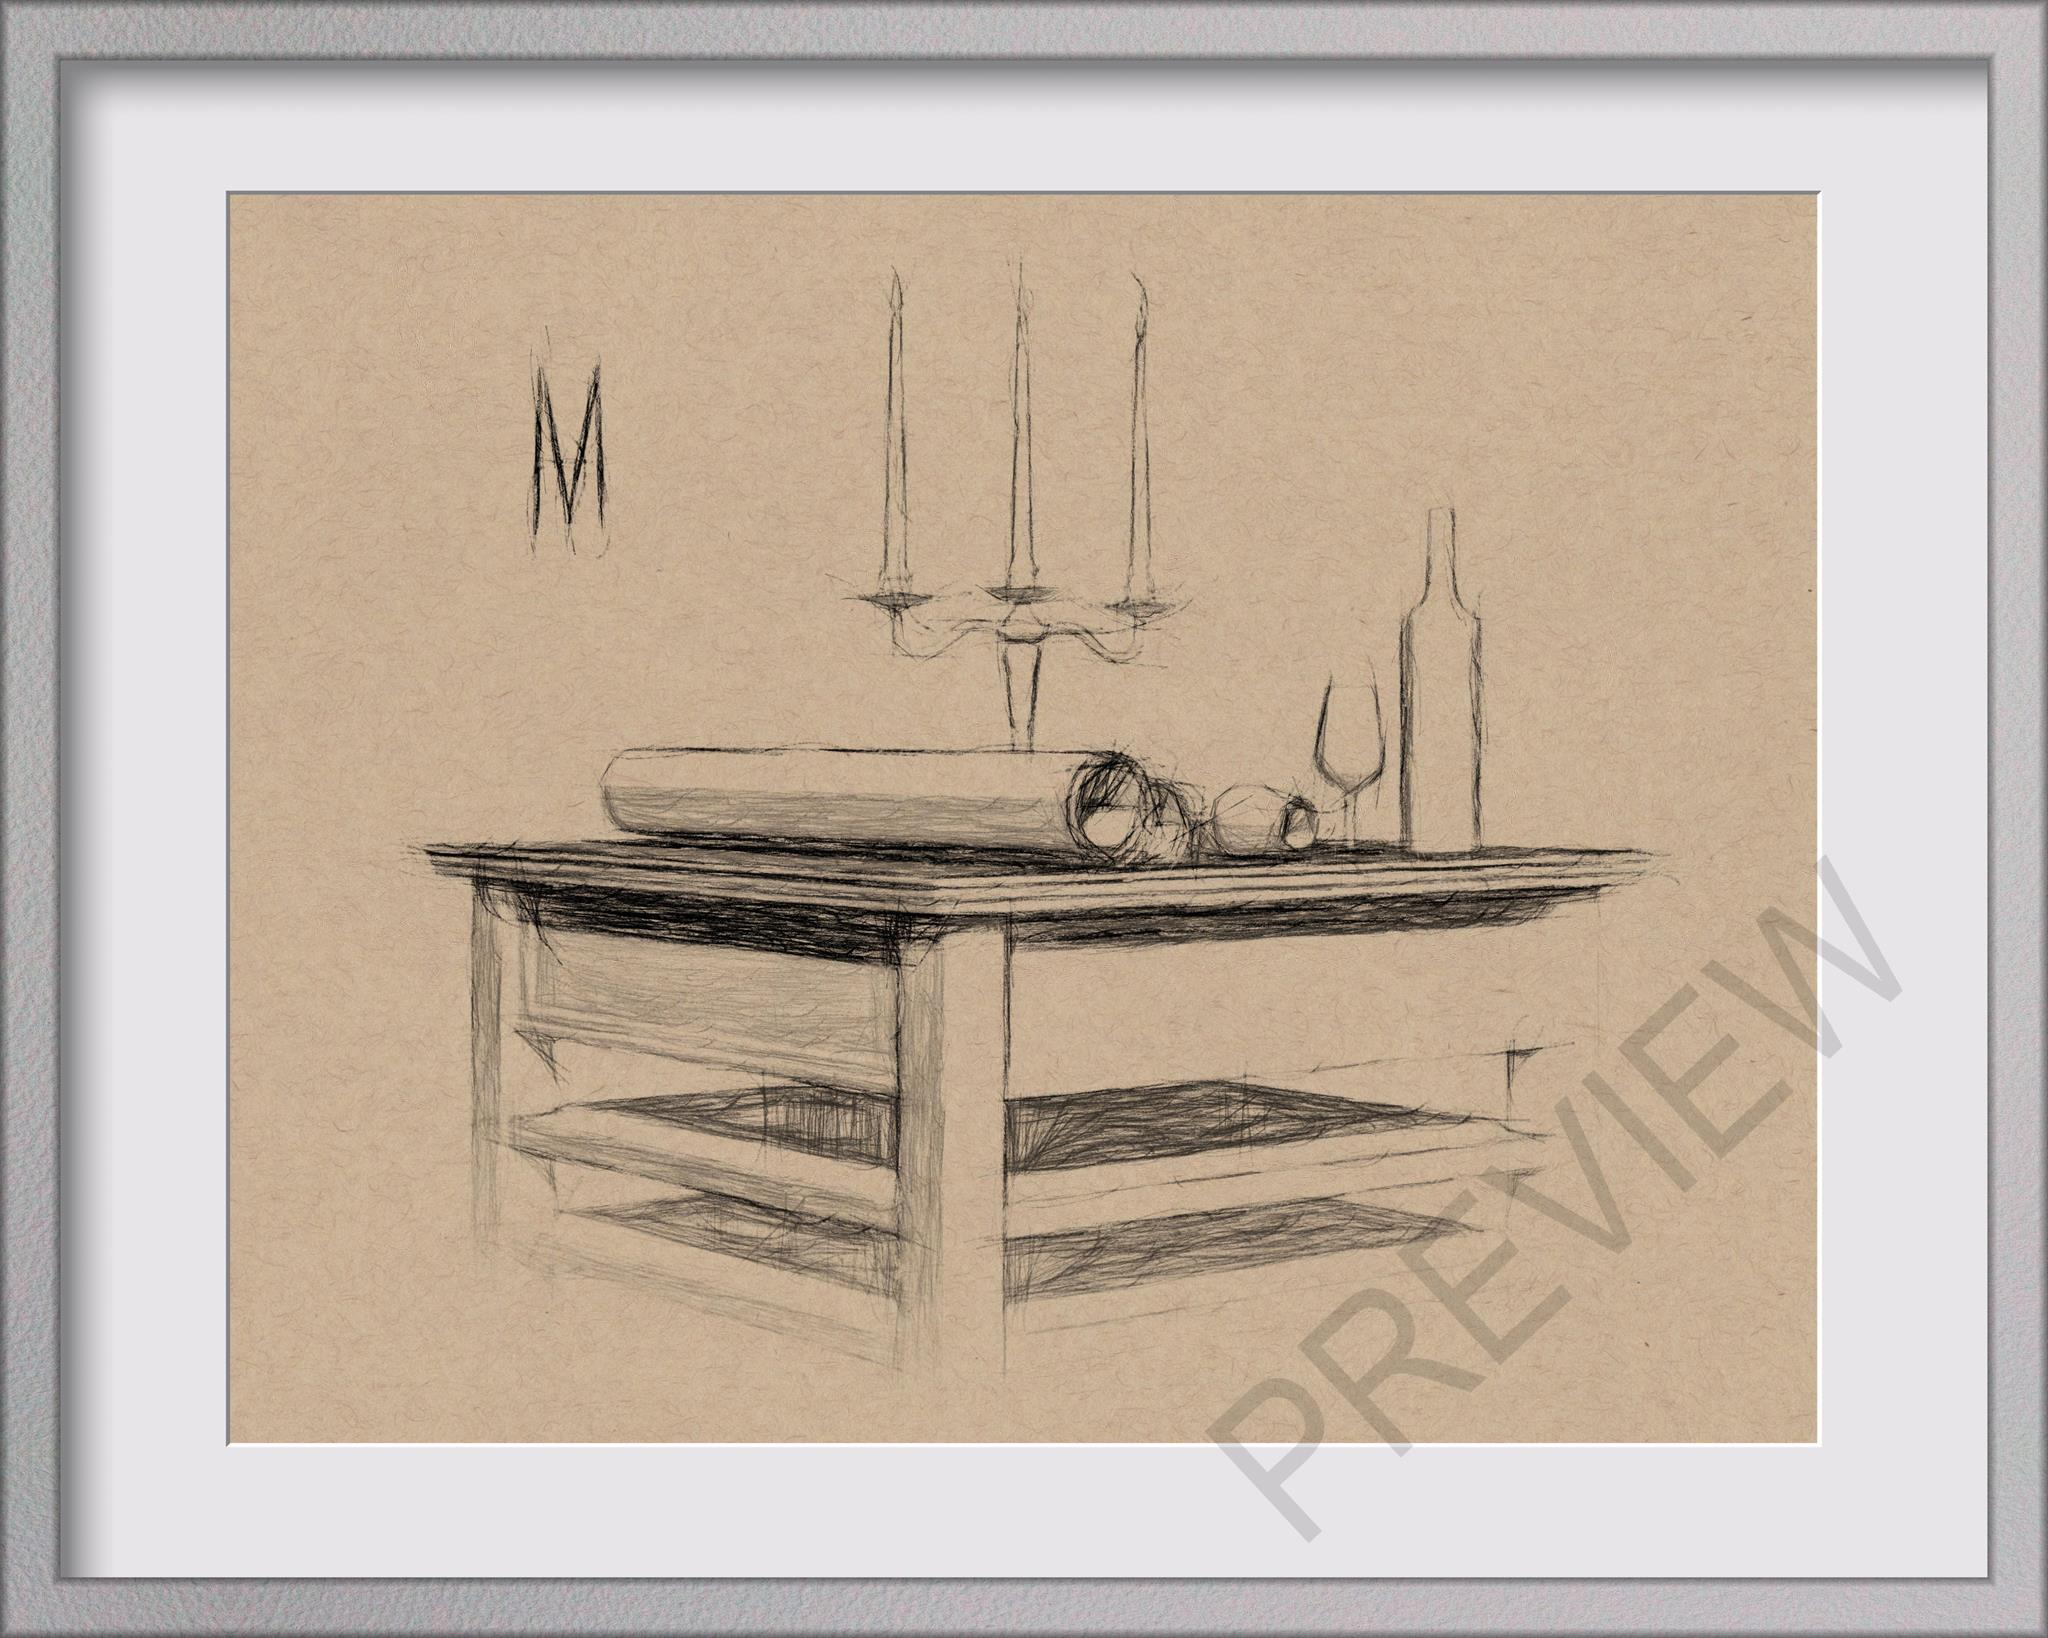 ORIGINAL WINE & CANDLE TABLE STILL LIFE 8x10 MIXED MEDIA DRAWING